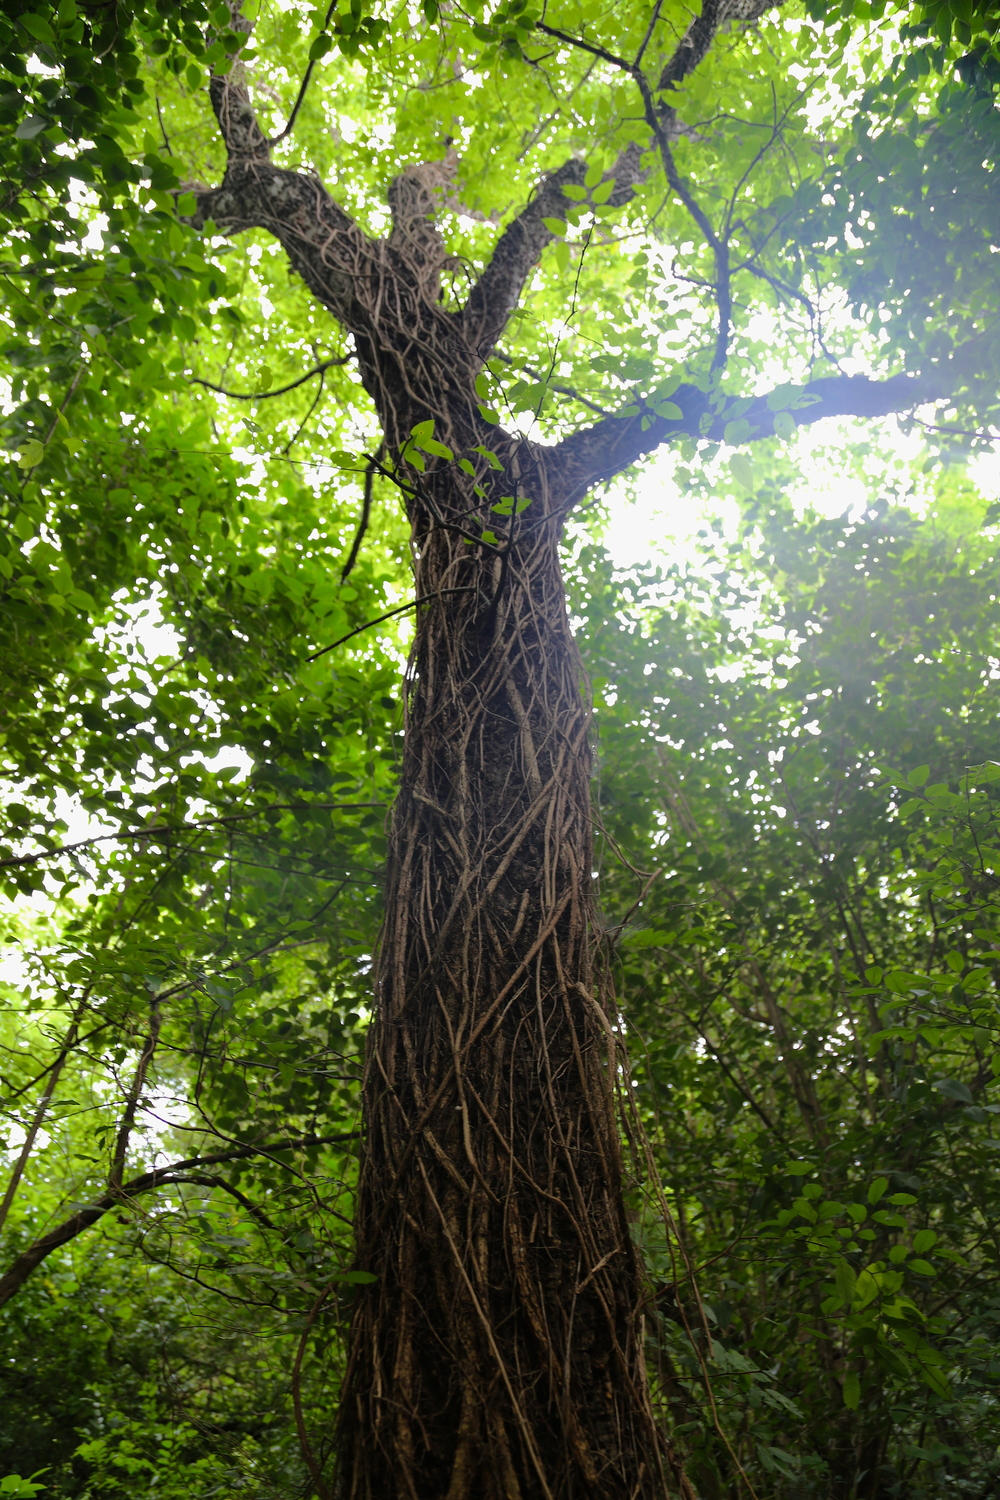 Invasive Cat's claw vine snakes up a native tree. It gets its name from three-pronged climbing spikes that resemble a cat's paw.